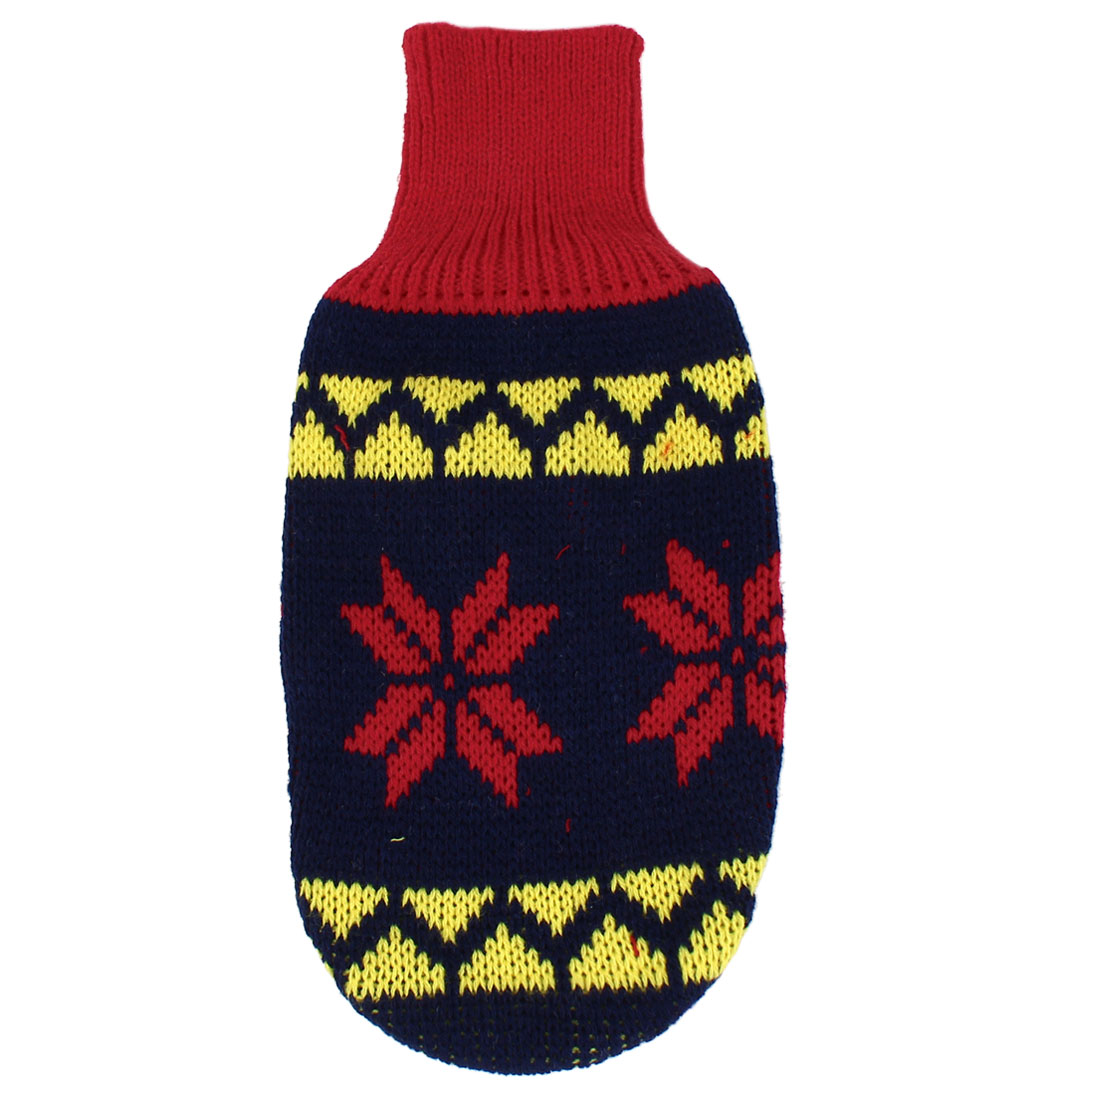 Pet Dog Puppy Ribbed Cuff Knitwear Turtleneck Apparel Sweater Dark Blue Red Yellow Size XXS